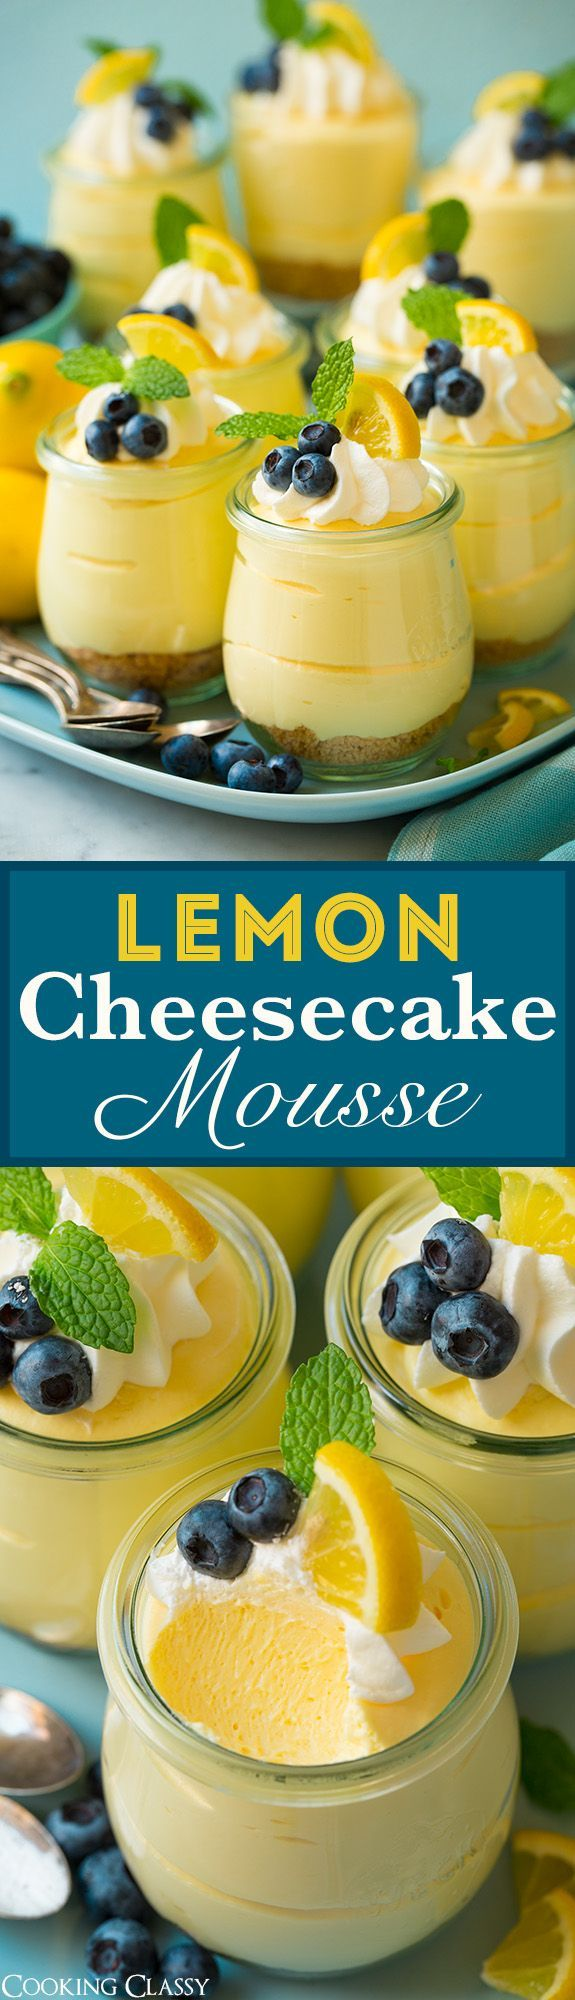 Lemon Cheesecake Mousse - the ULTIMATE spring dessert! These are to die for! No one can stop at one bite!